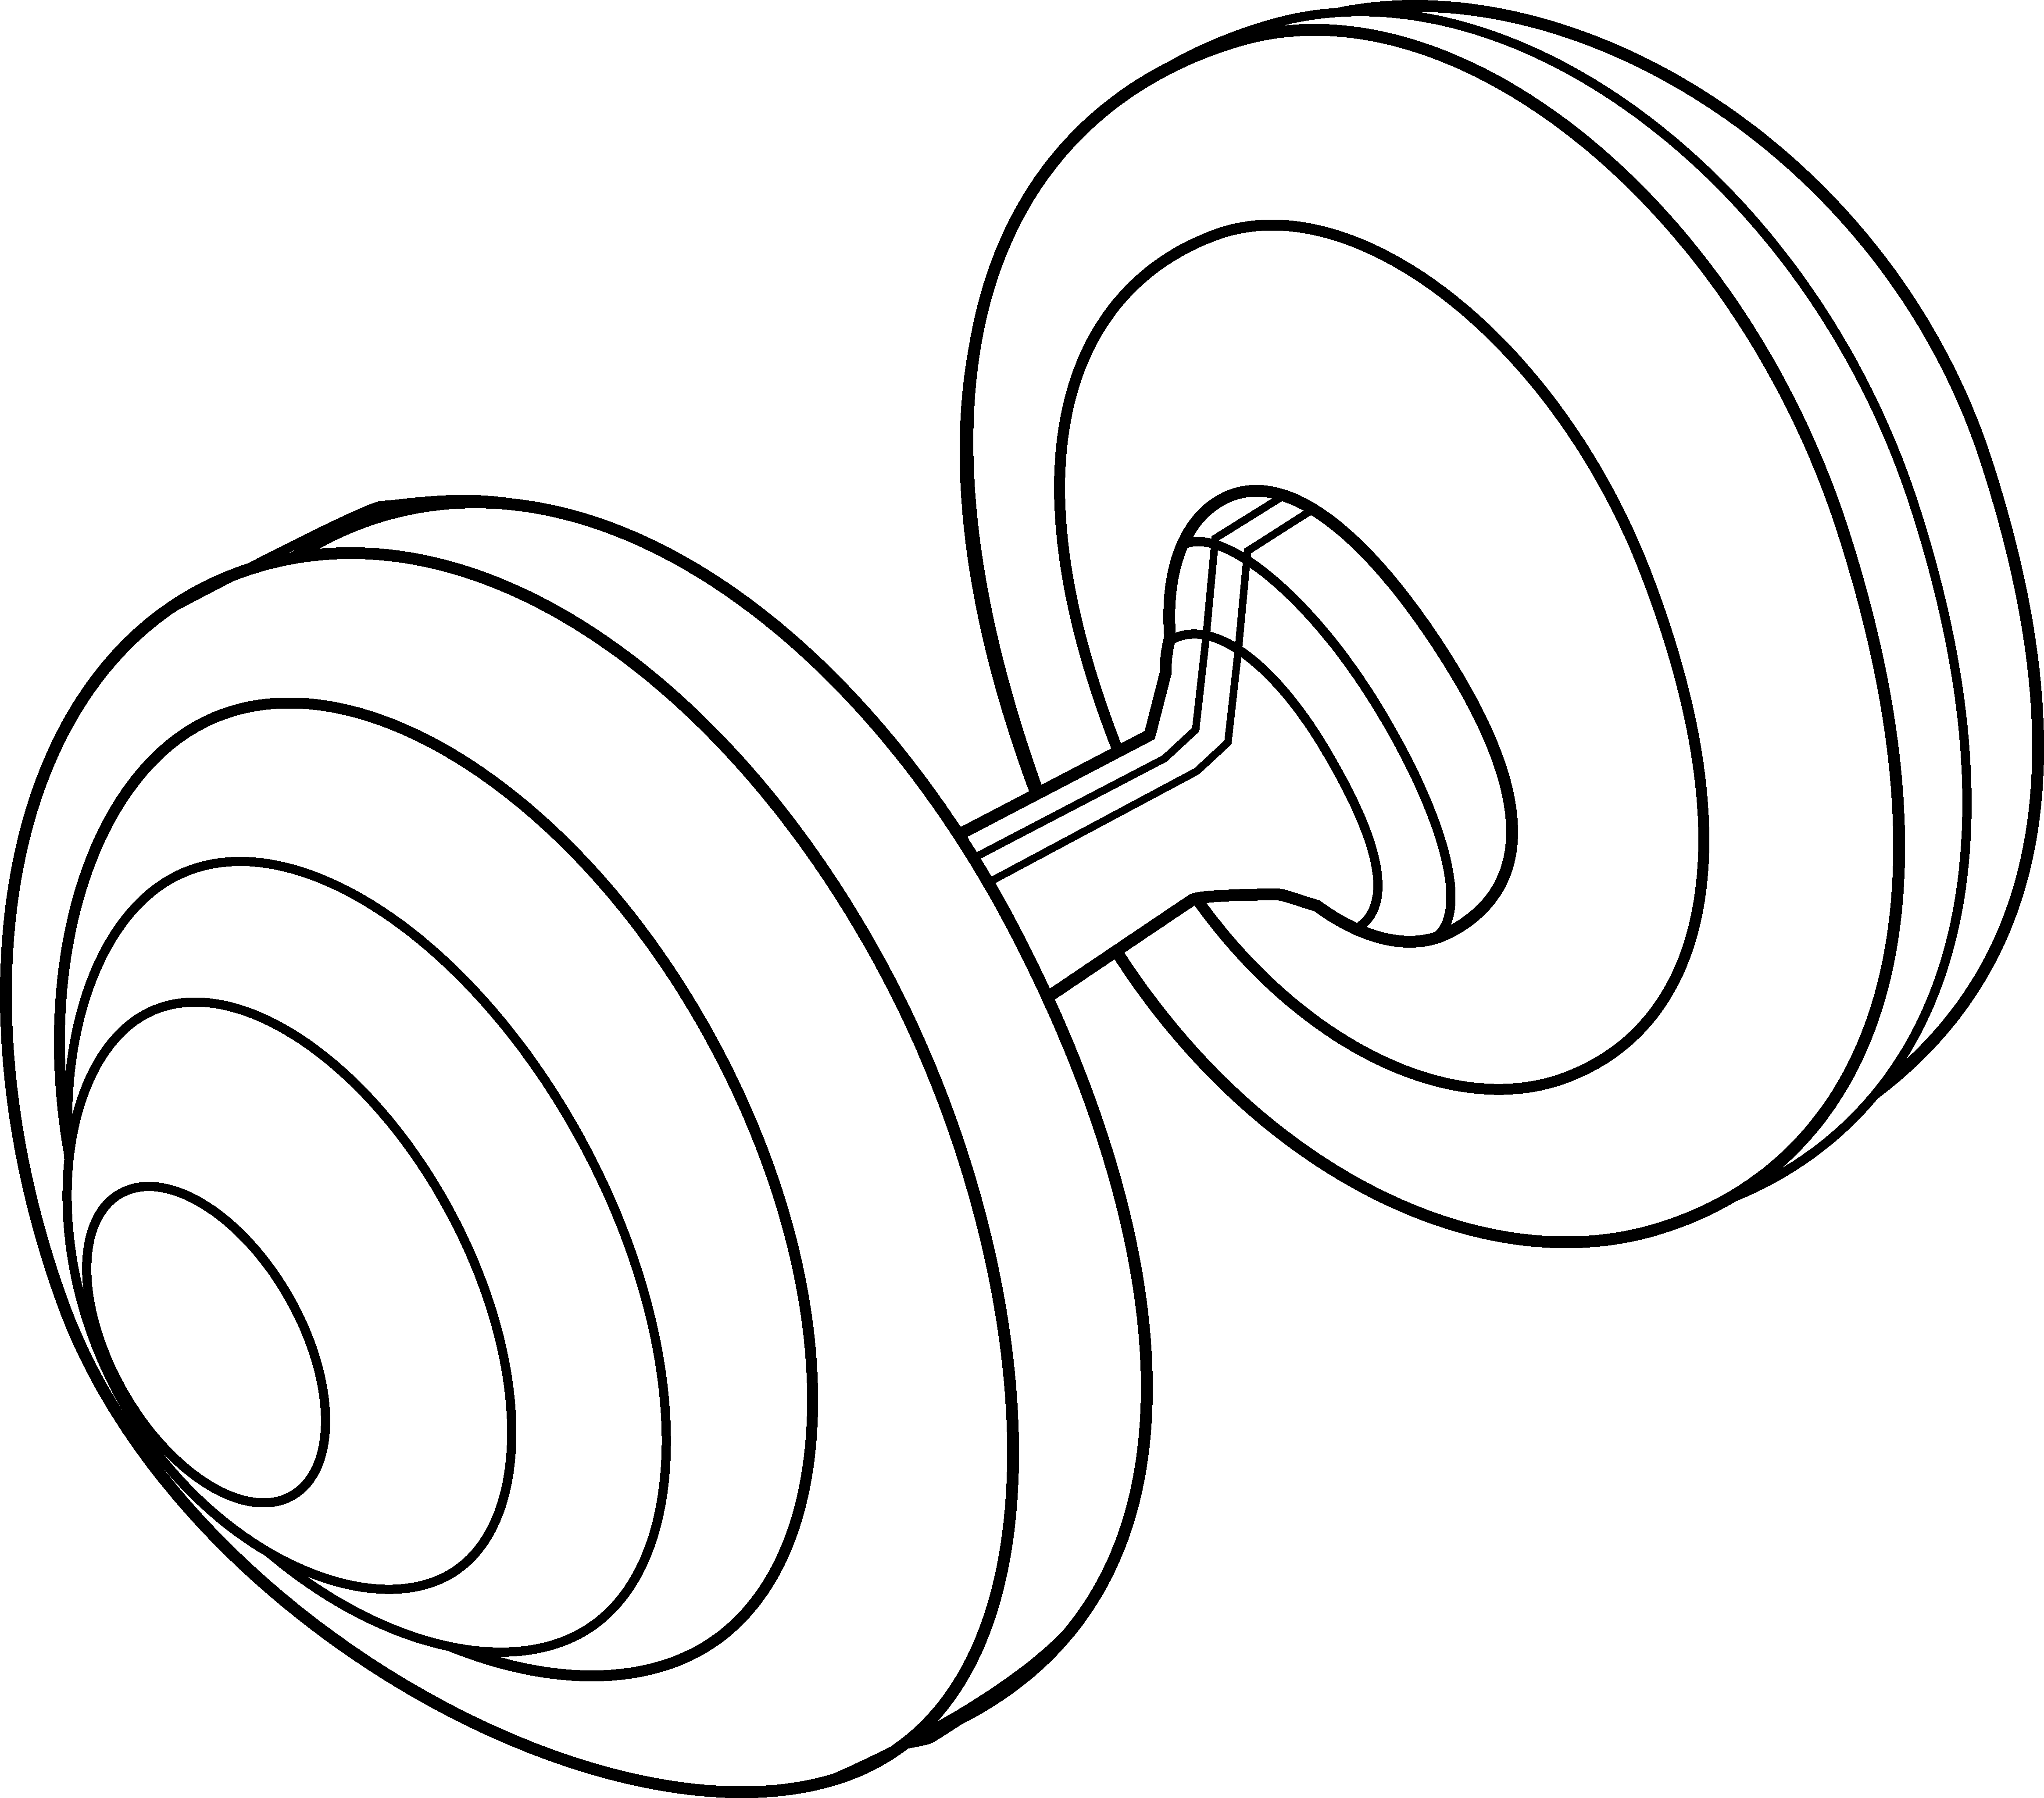 White clipart barbell Barbell Weight Art Barbell Line